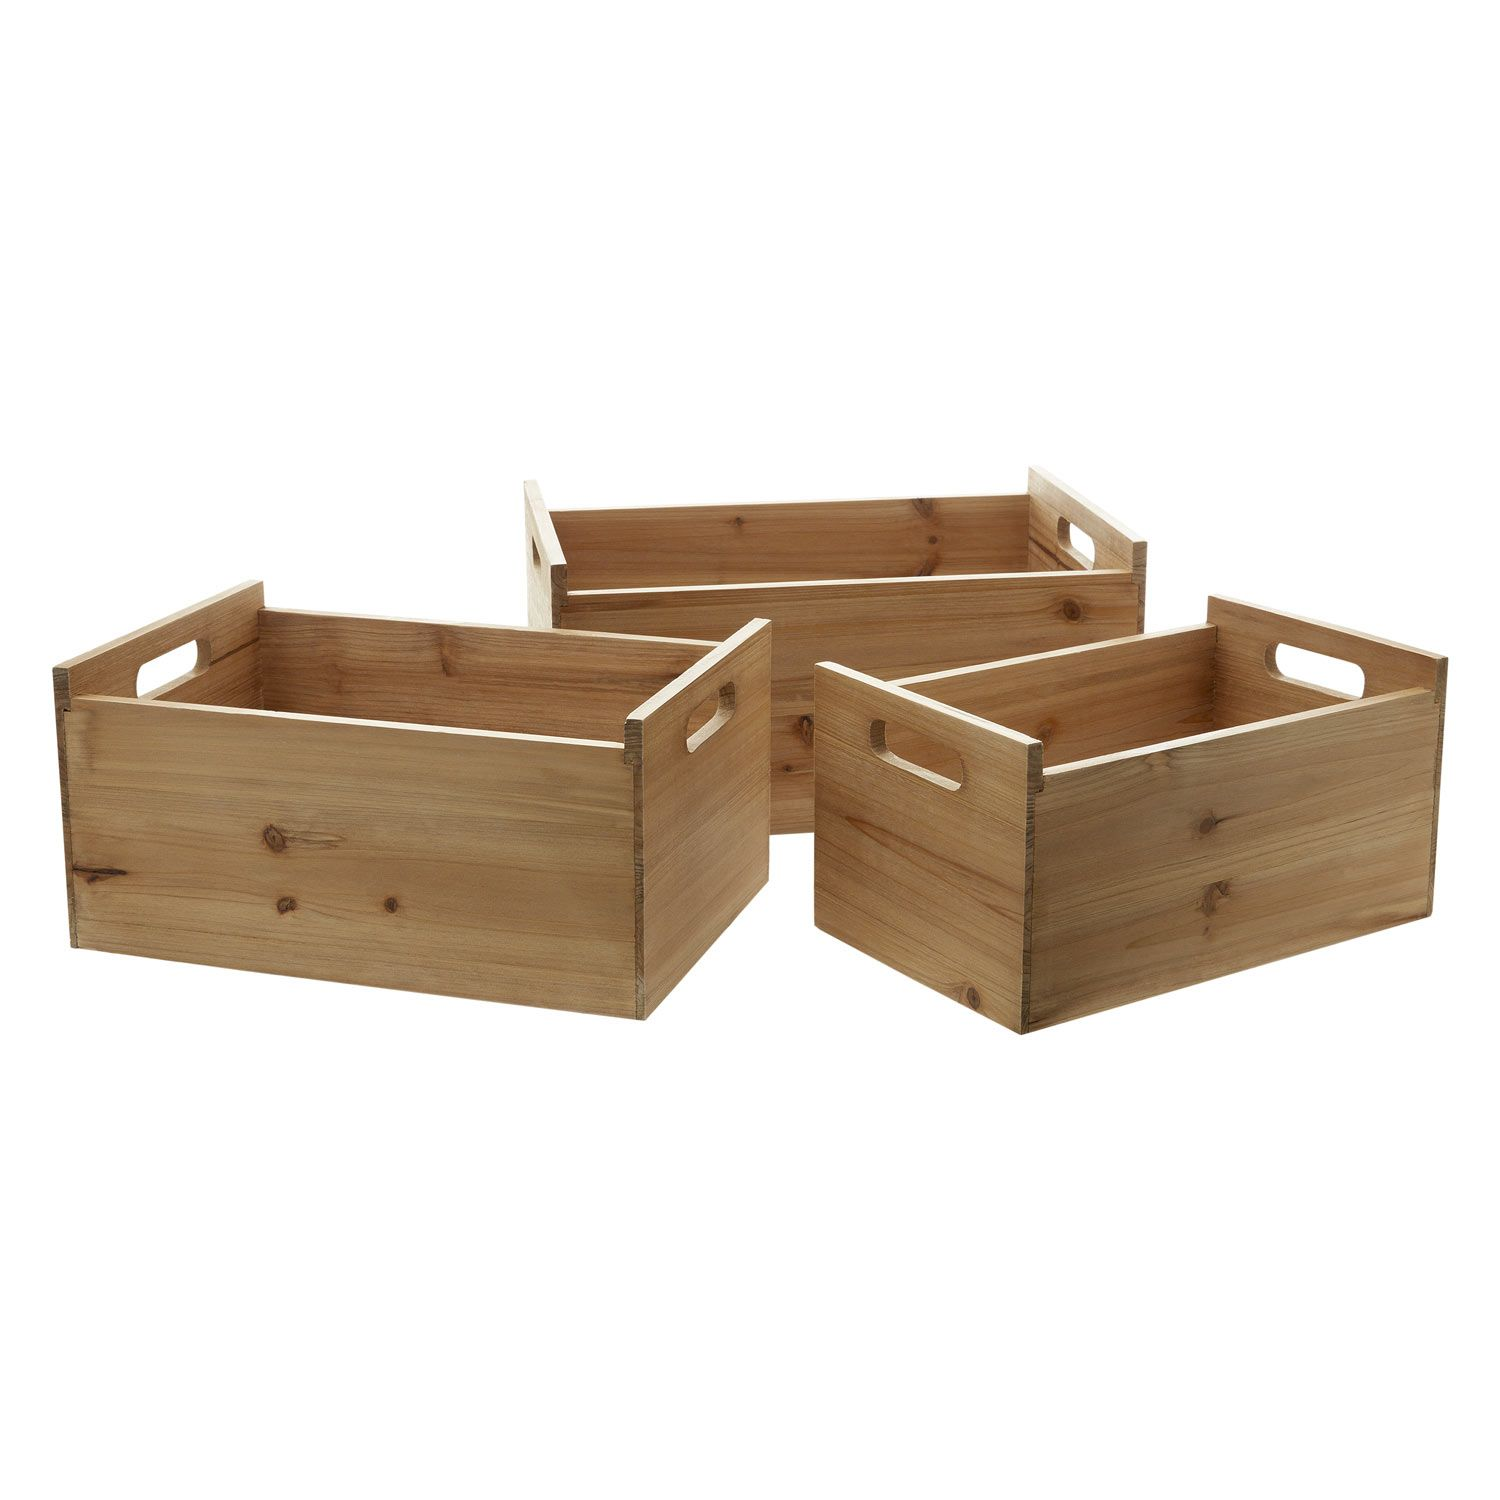 Chic Country Natural Wooden Crates Tk Maxx Home Ideas Wood